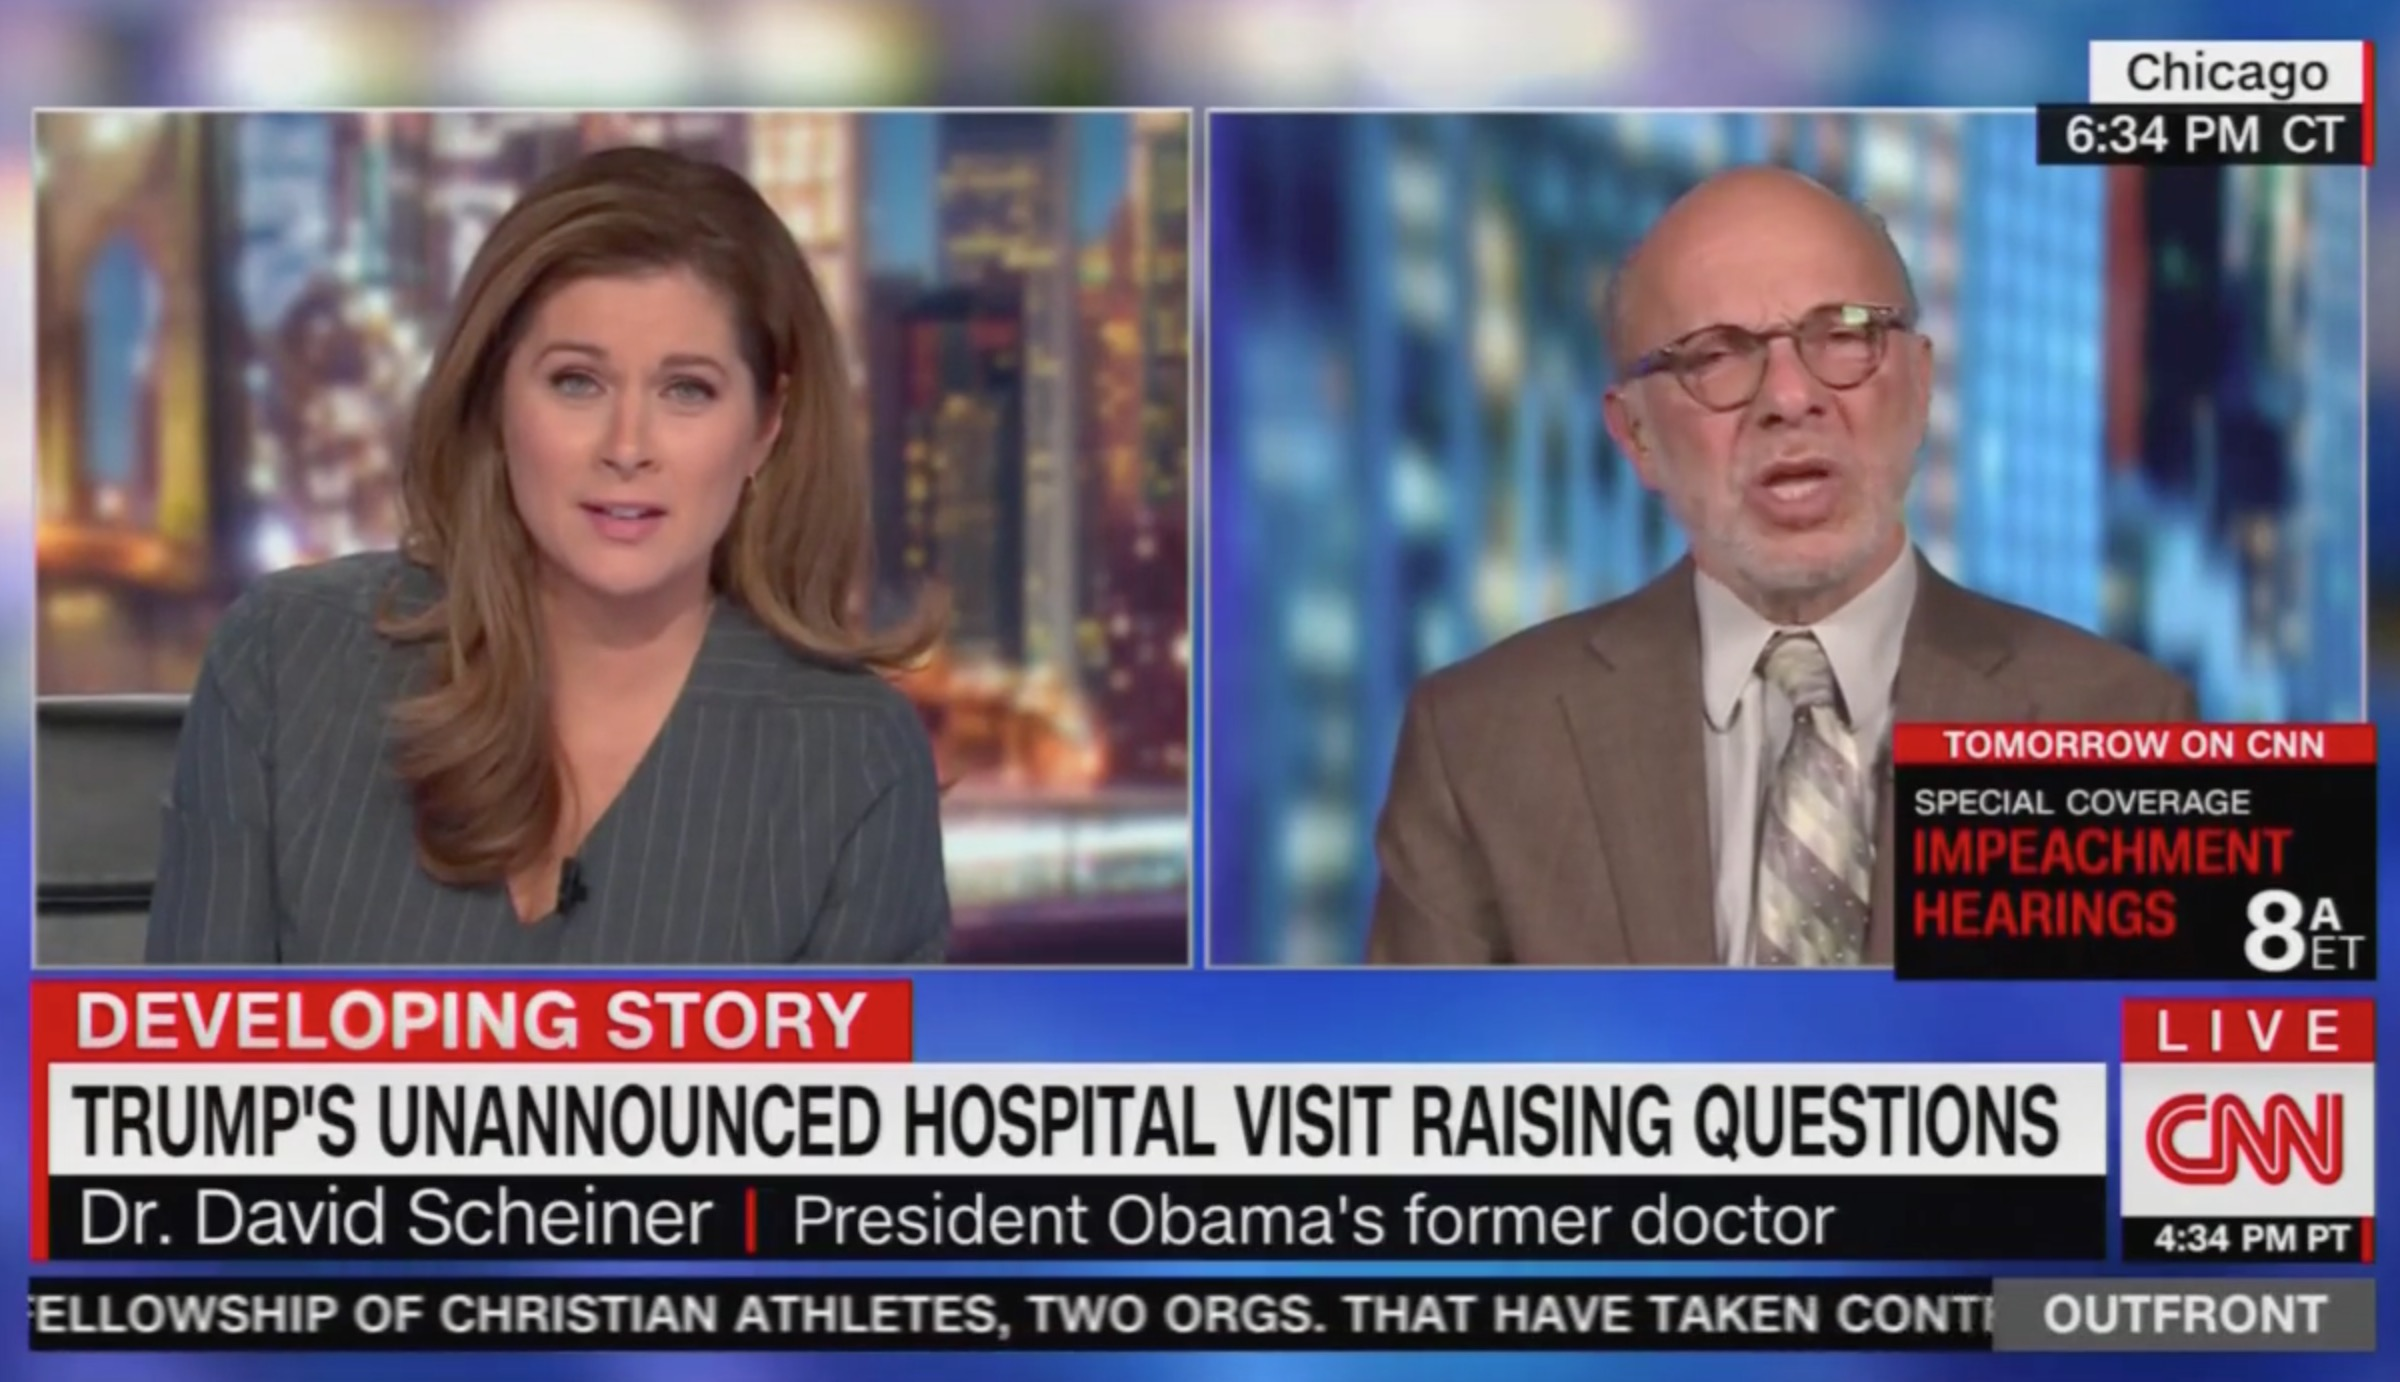 Former White House Physician on Trump's Health: There's a 'Neurological Issue' Not Being Addressed